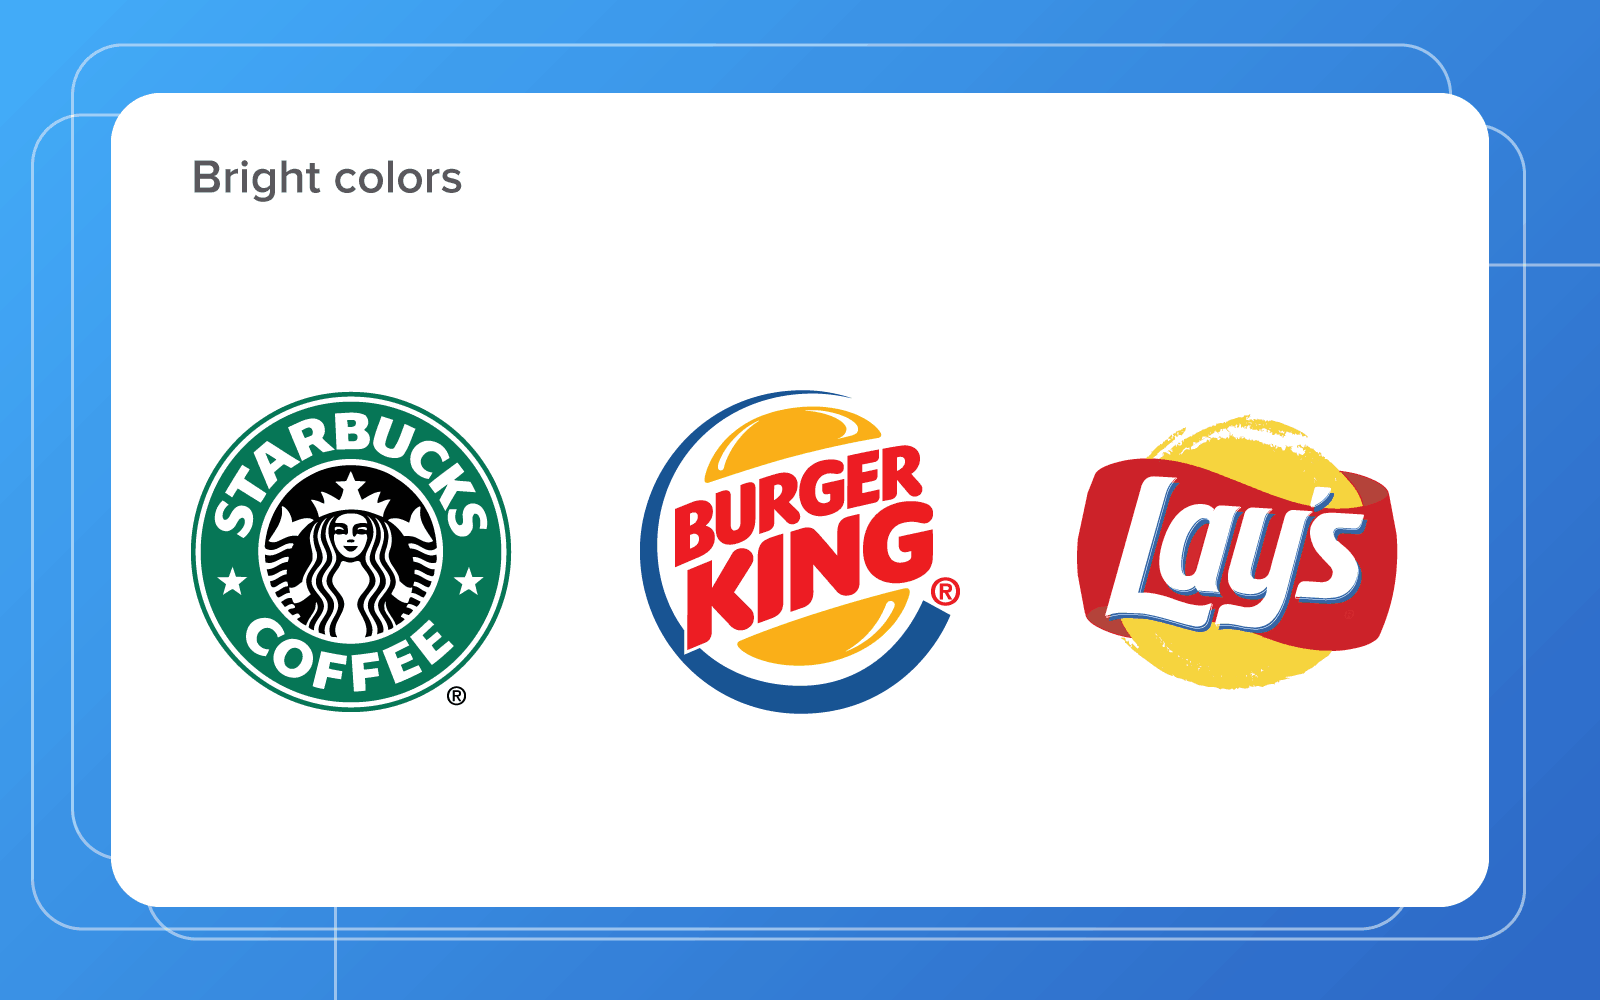 colorful logo designs